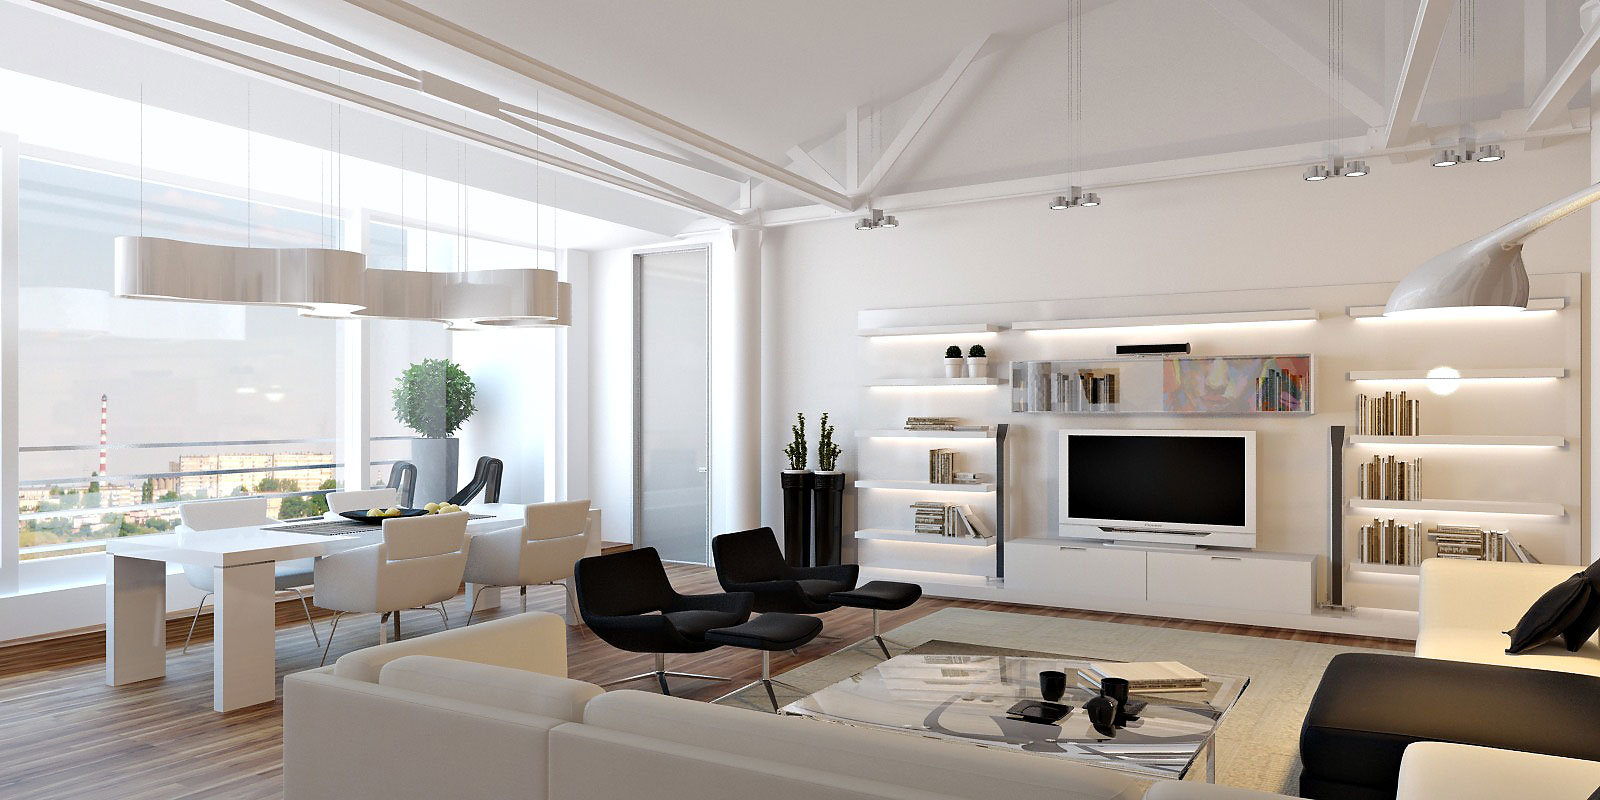 The pros and cons of living in a loft for New apartment design